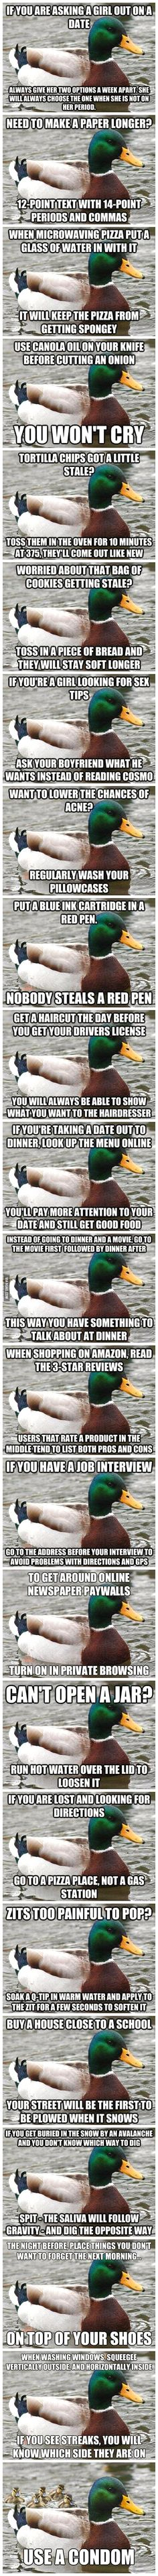 Great advice from a duck.